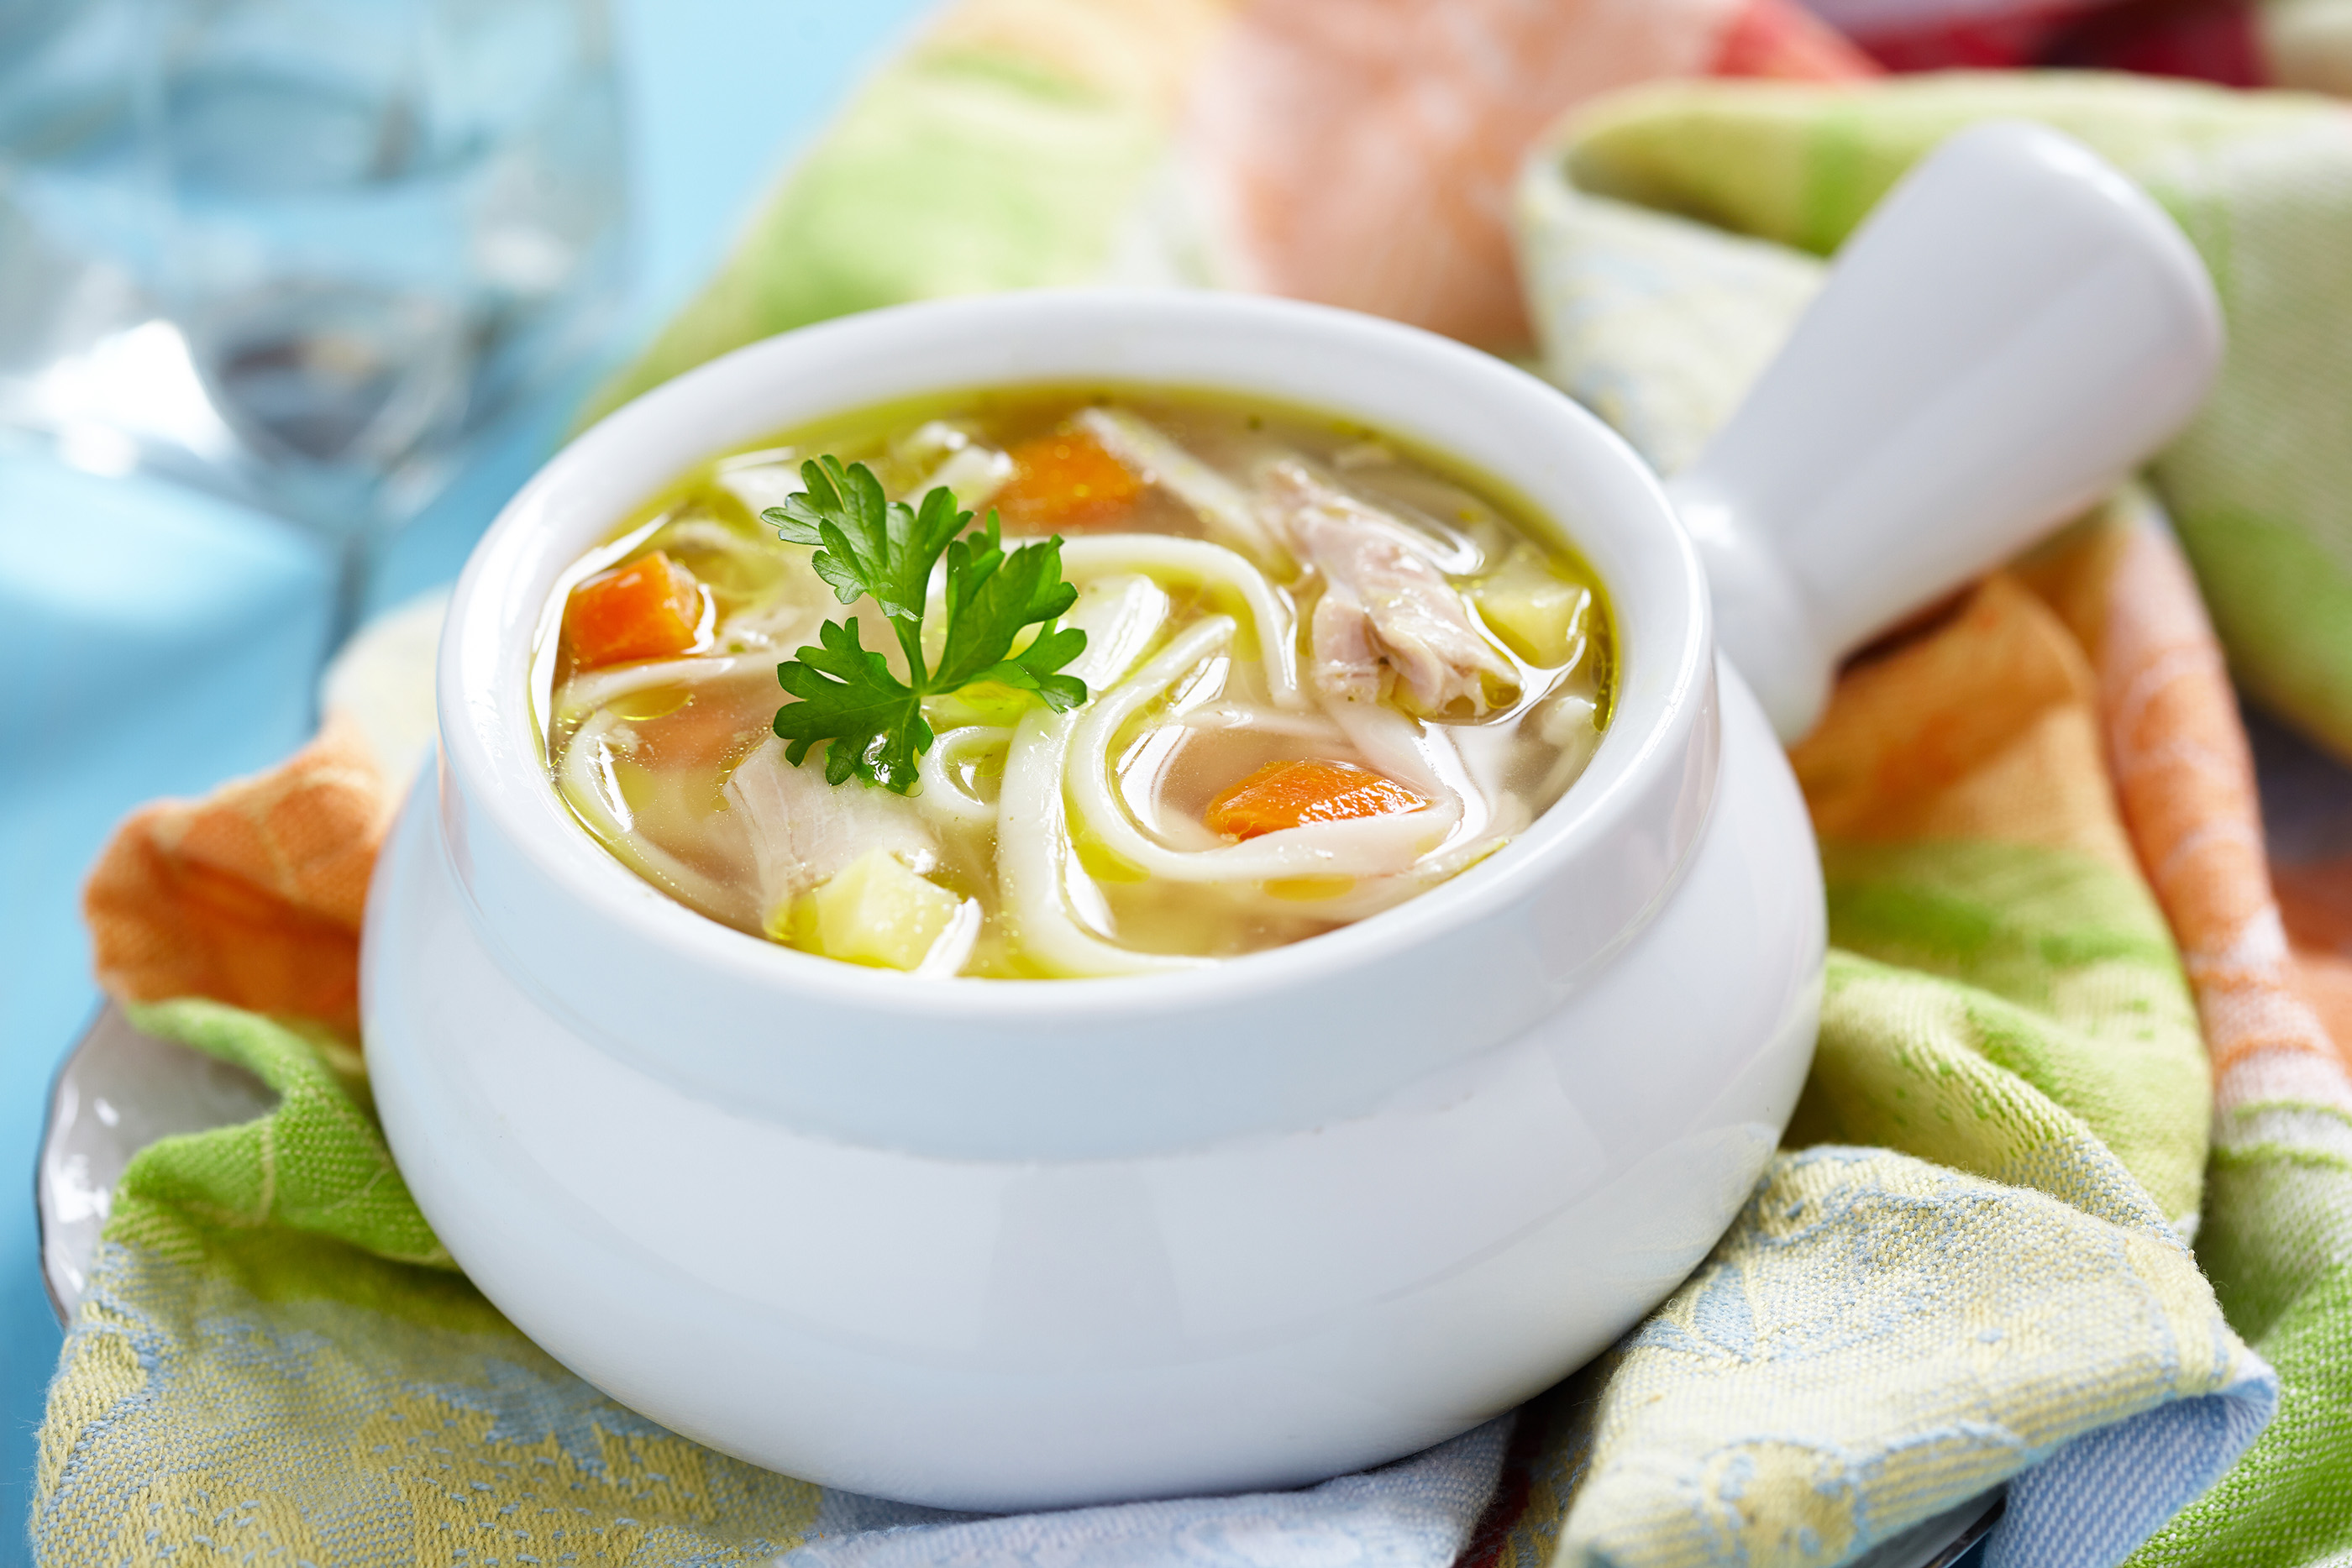 Vegetable soup and egg noodles